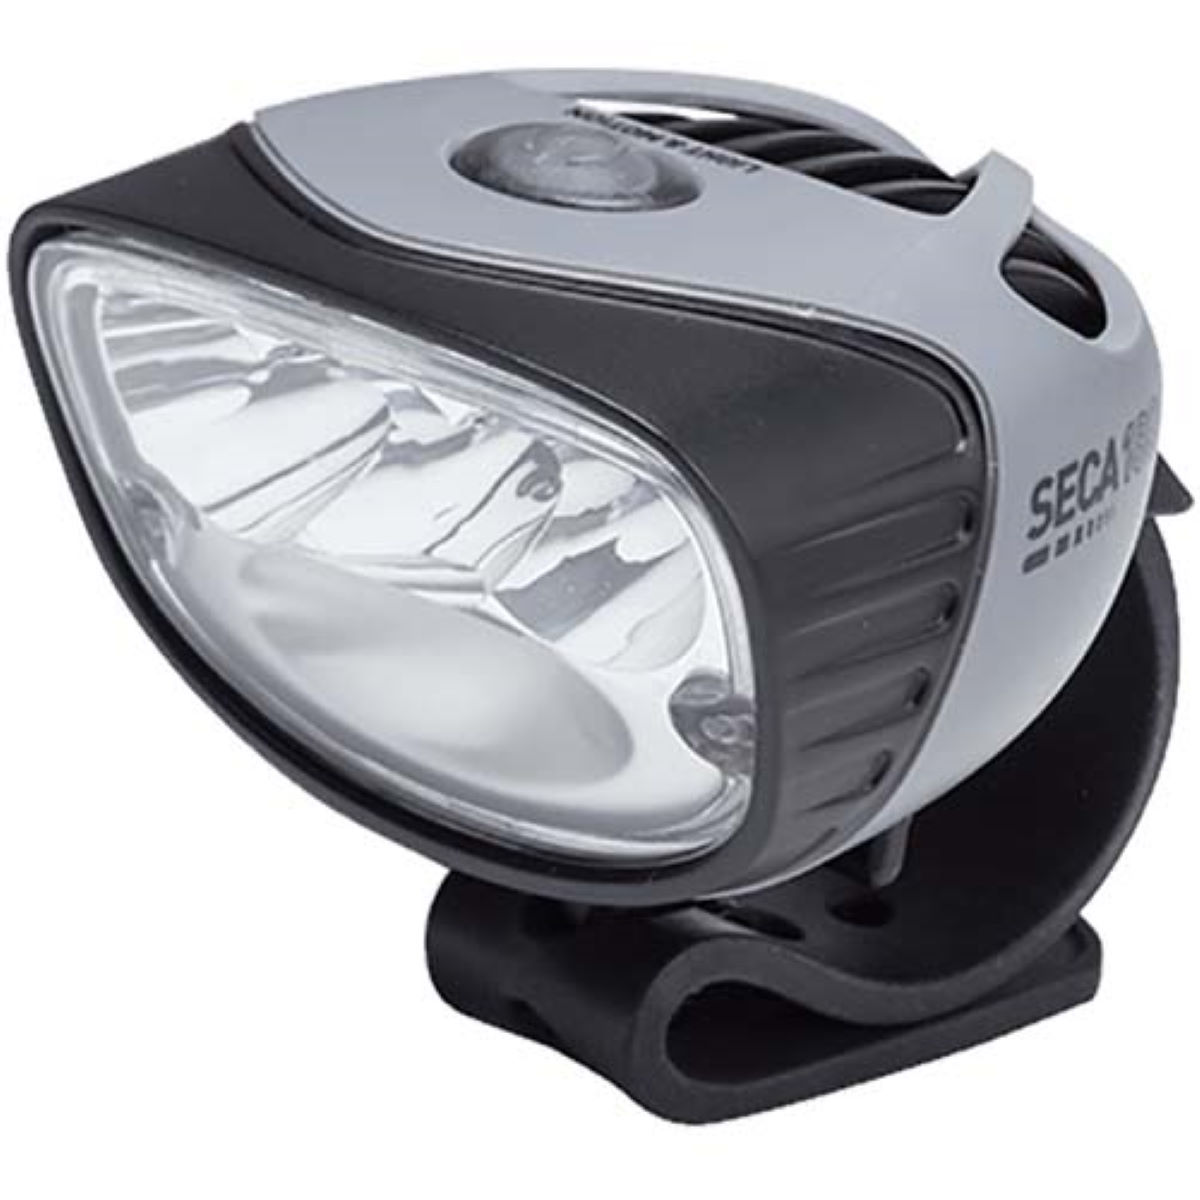 Light And Motion Light And Motion Seca 1800 eBike Front Light   Front Lights